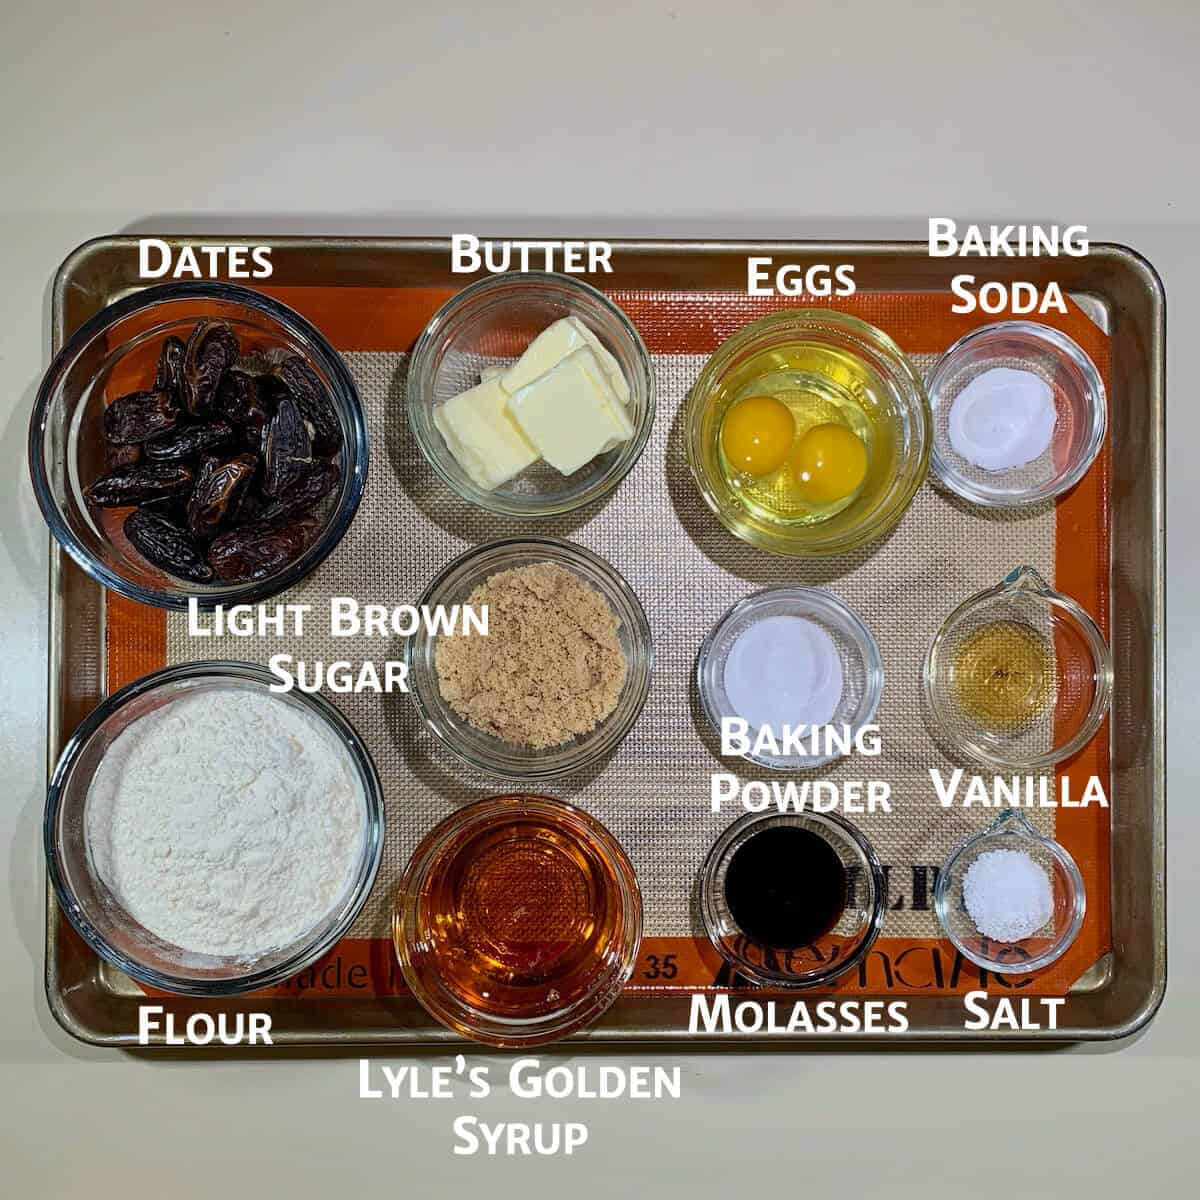 Sticky Toffee Pudding cake ingredients portioned in glass bowls on a baking pan.